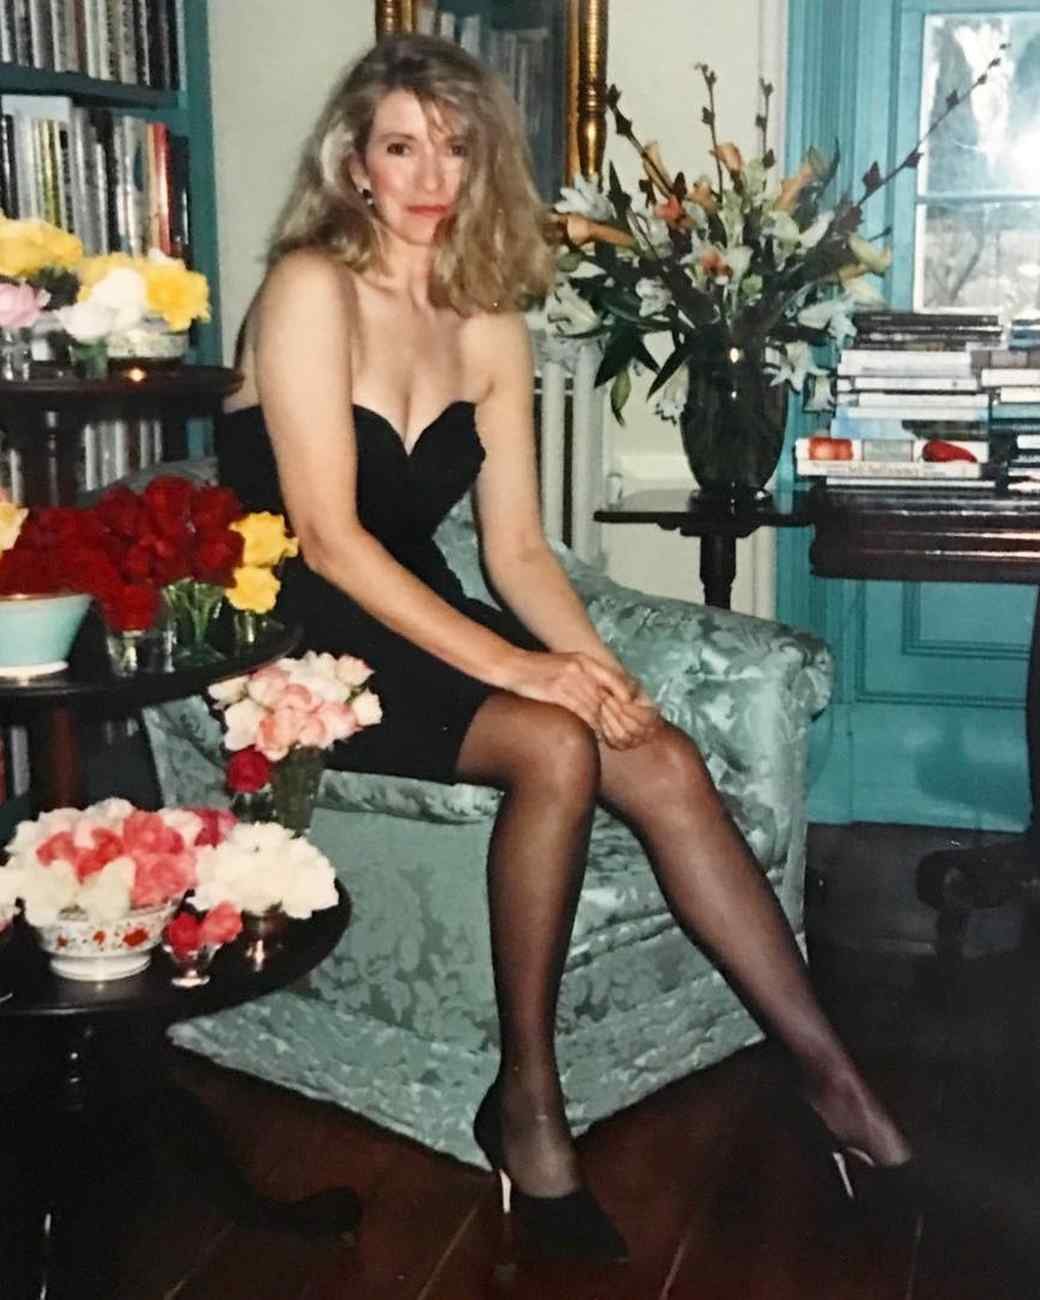 martha in black dress sitting in library